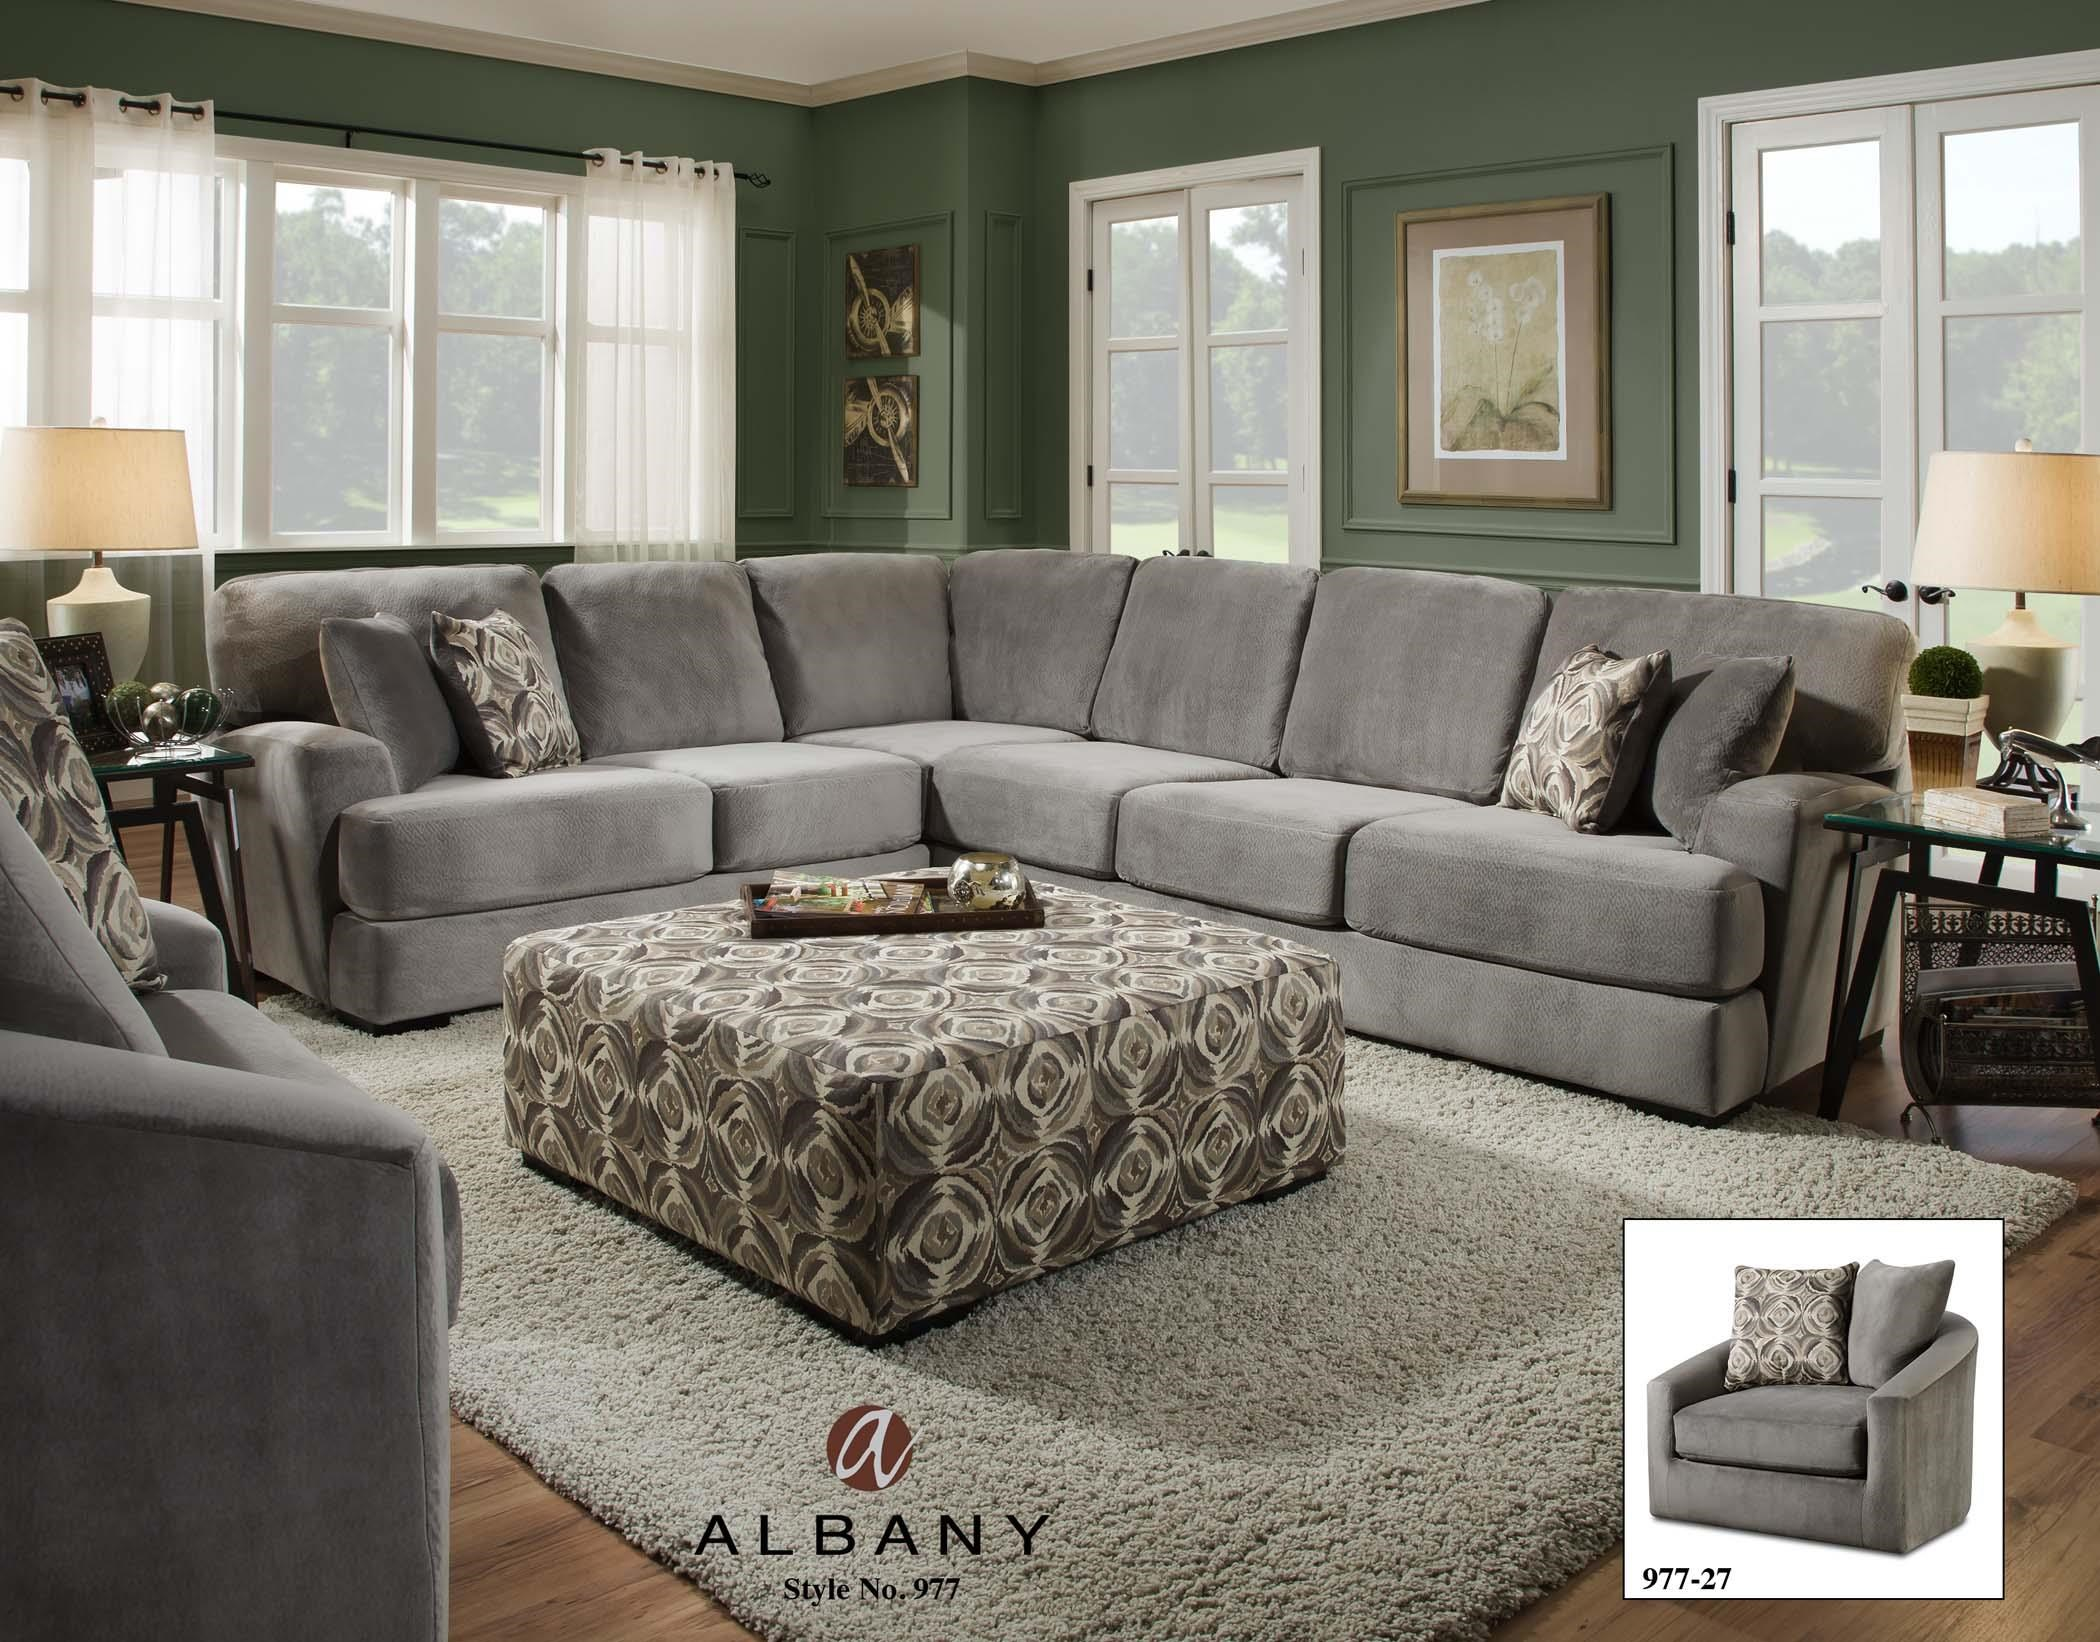 Albany 977 Transitional Sectional Sofa - Furniture Superstore - NM - Sofa Sectional : raf sofa sectional - Sectionals, Sofas & Couches